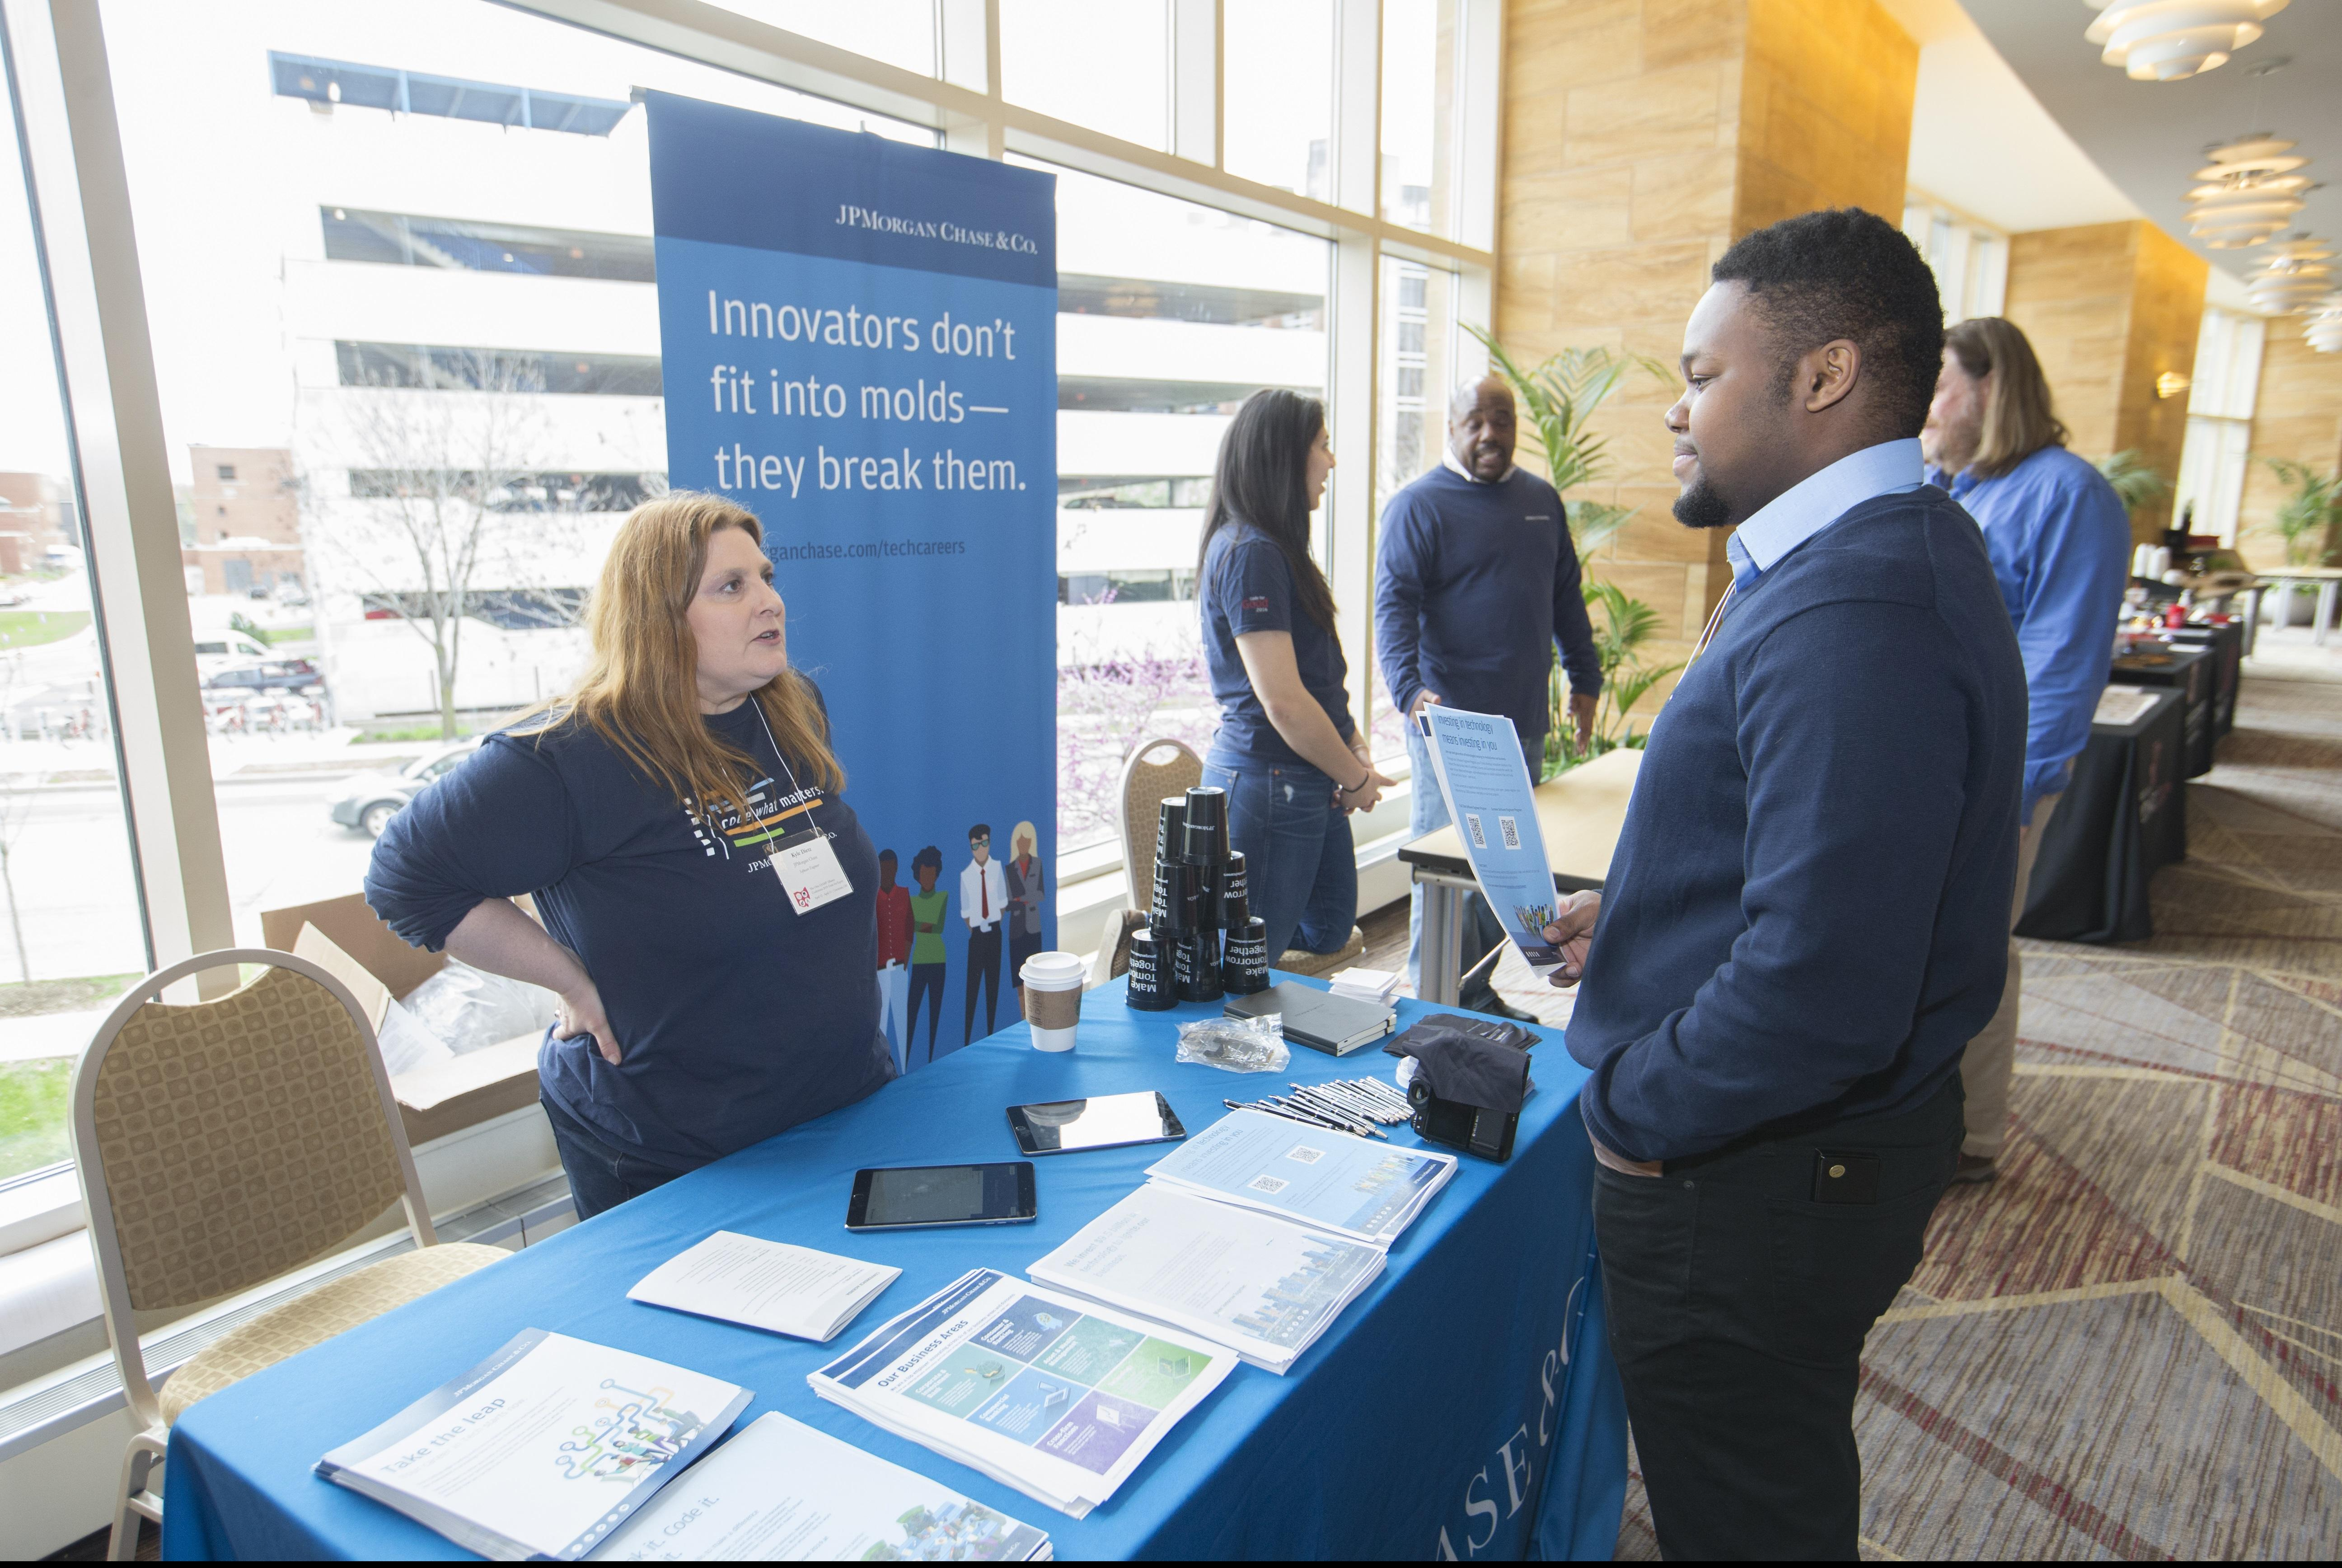 Industry Recruiter speaking to student conference attendee.